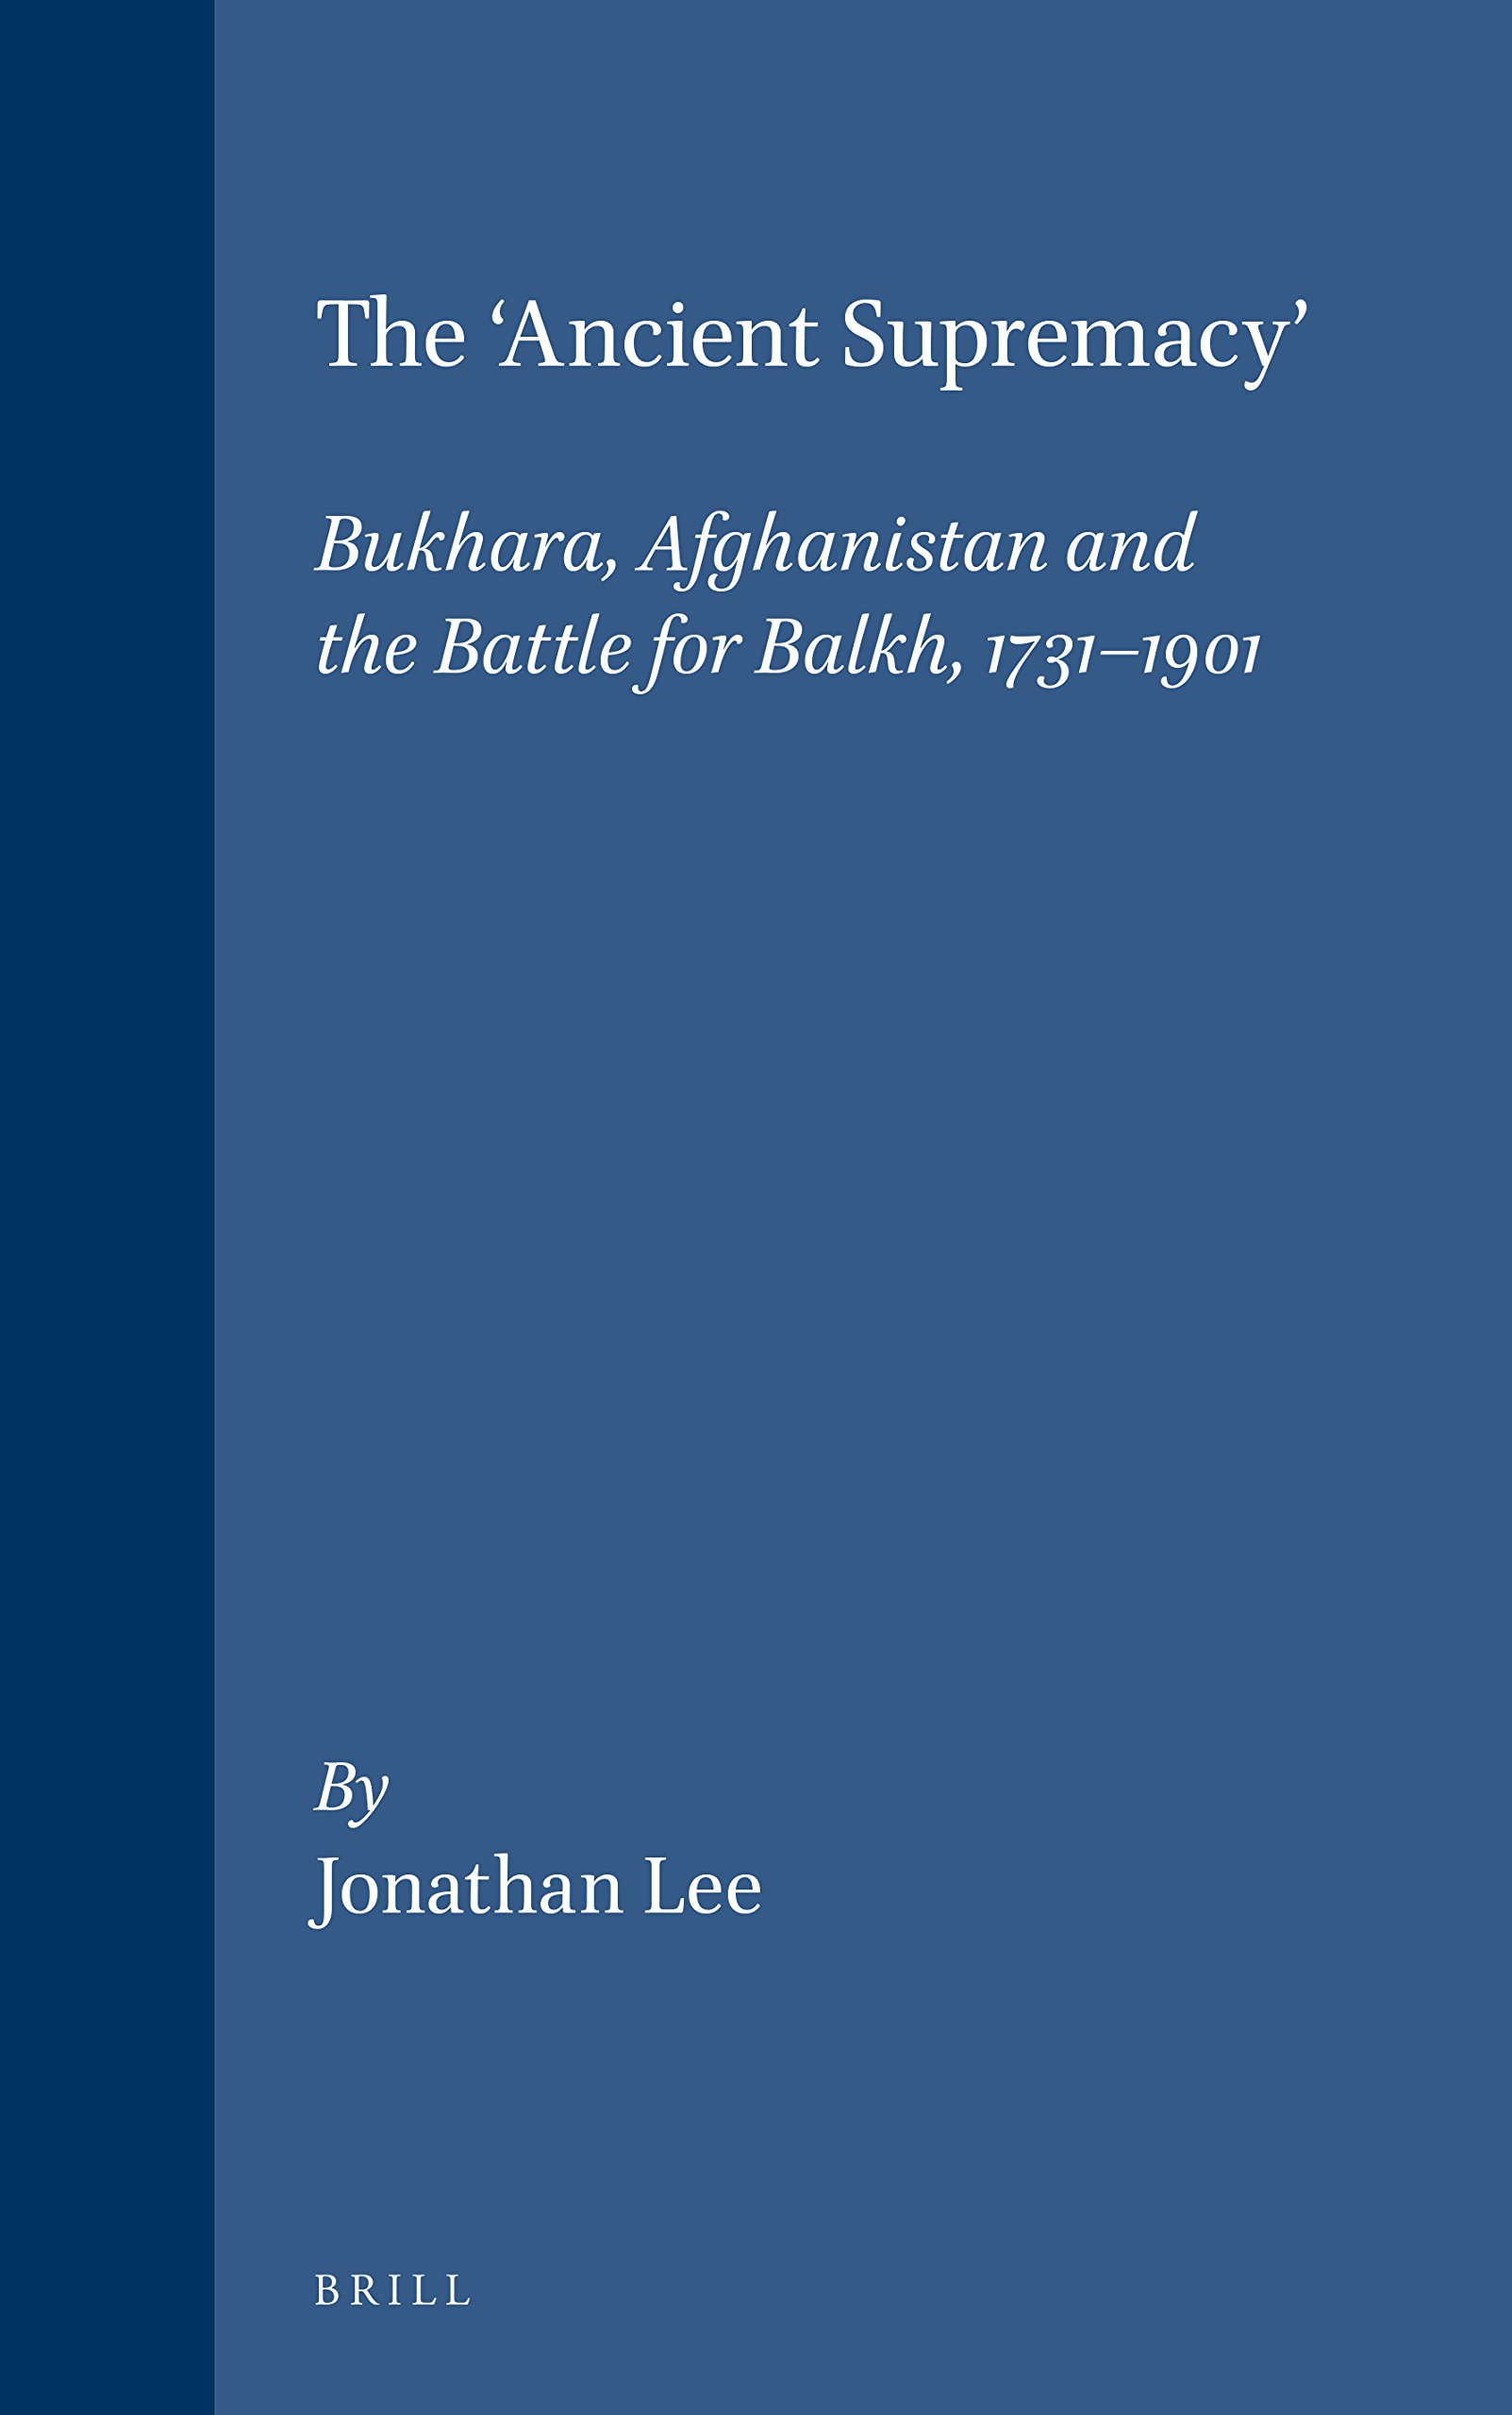 The Ancient Supremacy: Bukhara, Afghanistan and the Battle for Balkh, 1731-1901 (Islamic History and Civilization, No 15)